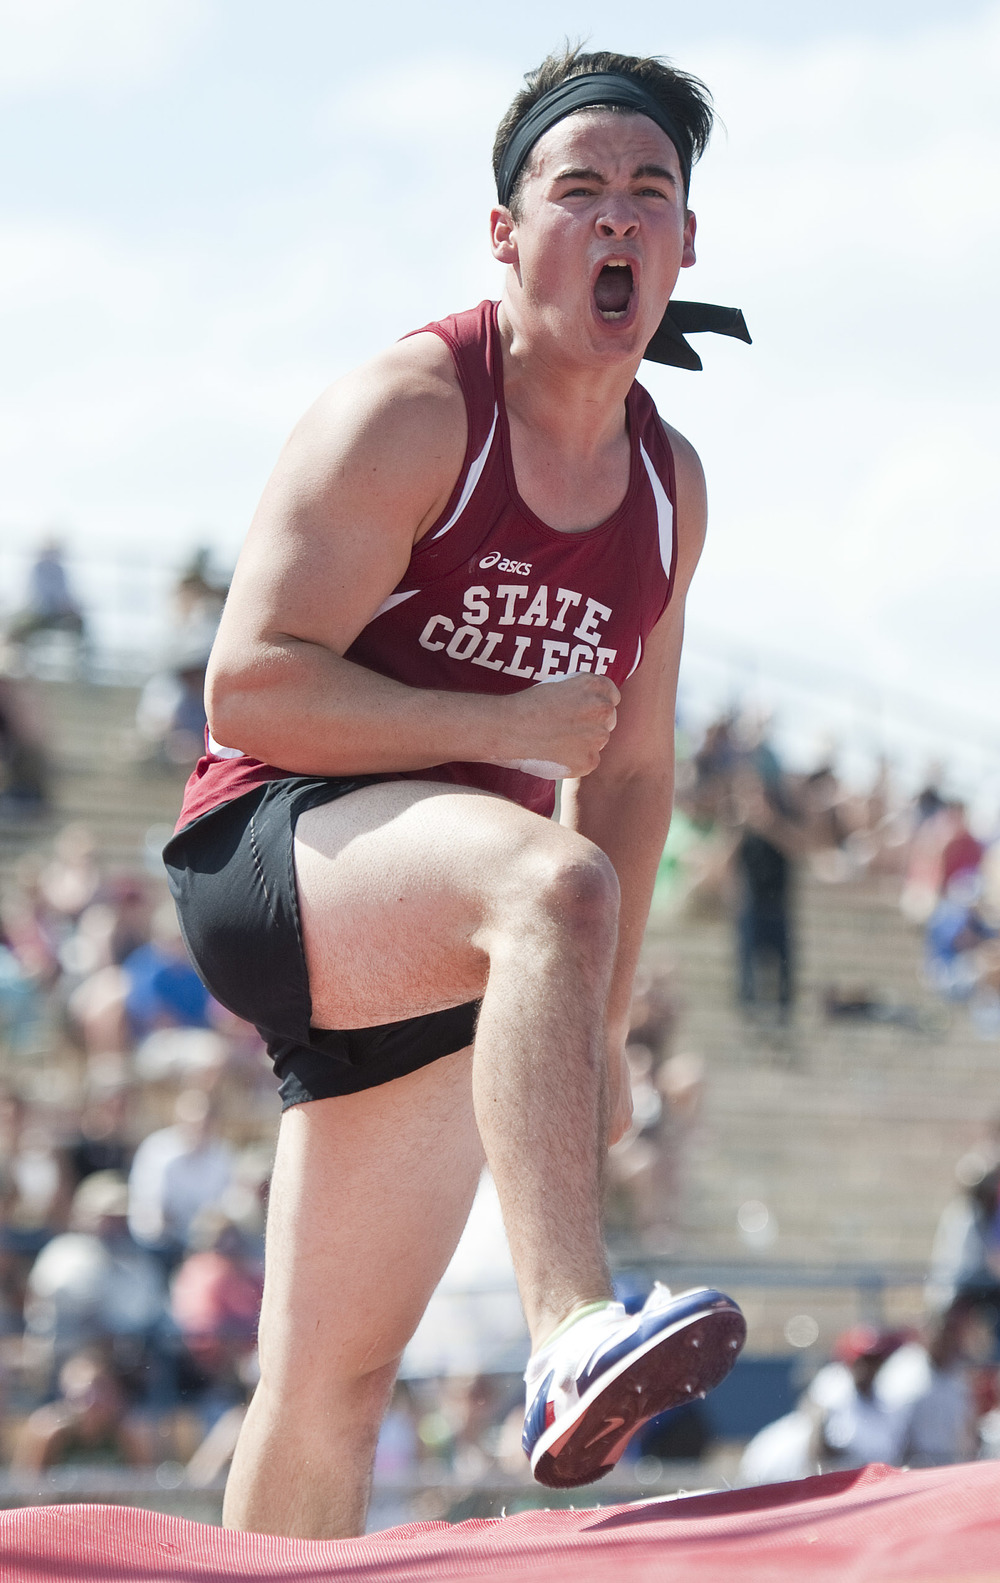 State College's Griffin Thompson reacts after his pole vault clear during the Class AAA PIAA track and field championships at Shippensburg University on Friday, May 27, 2016 in Shippensburg. Thompson finished in first place.